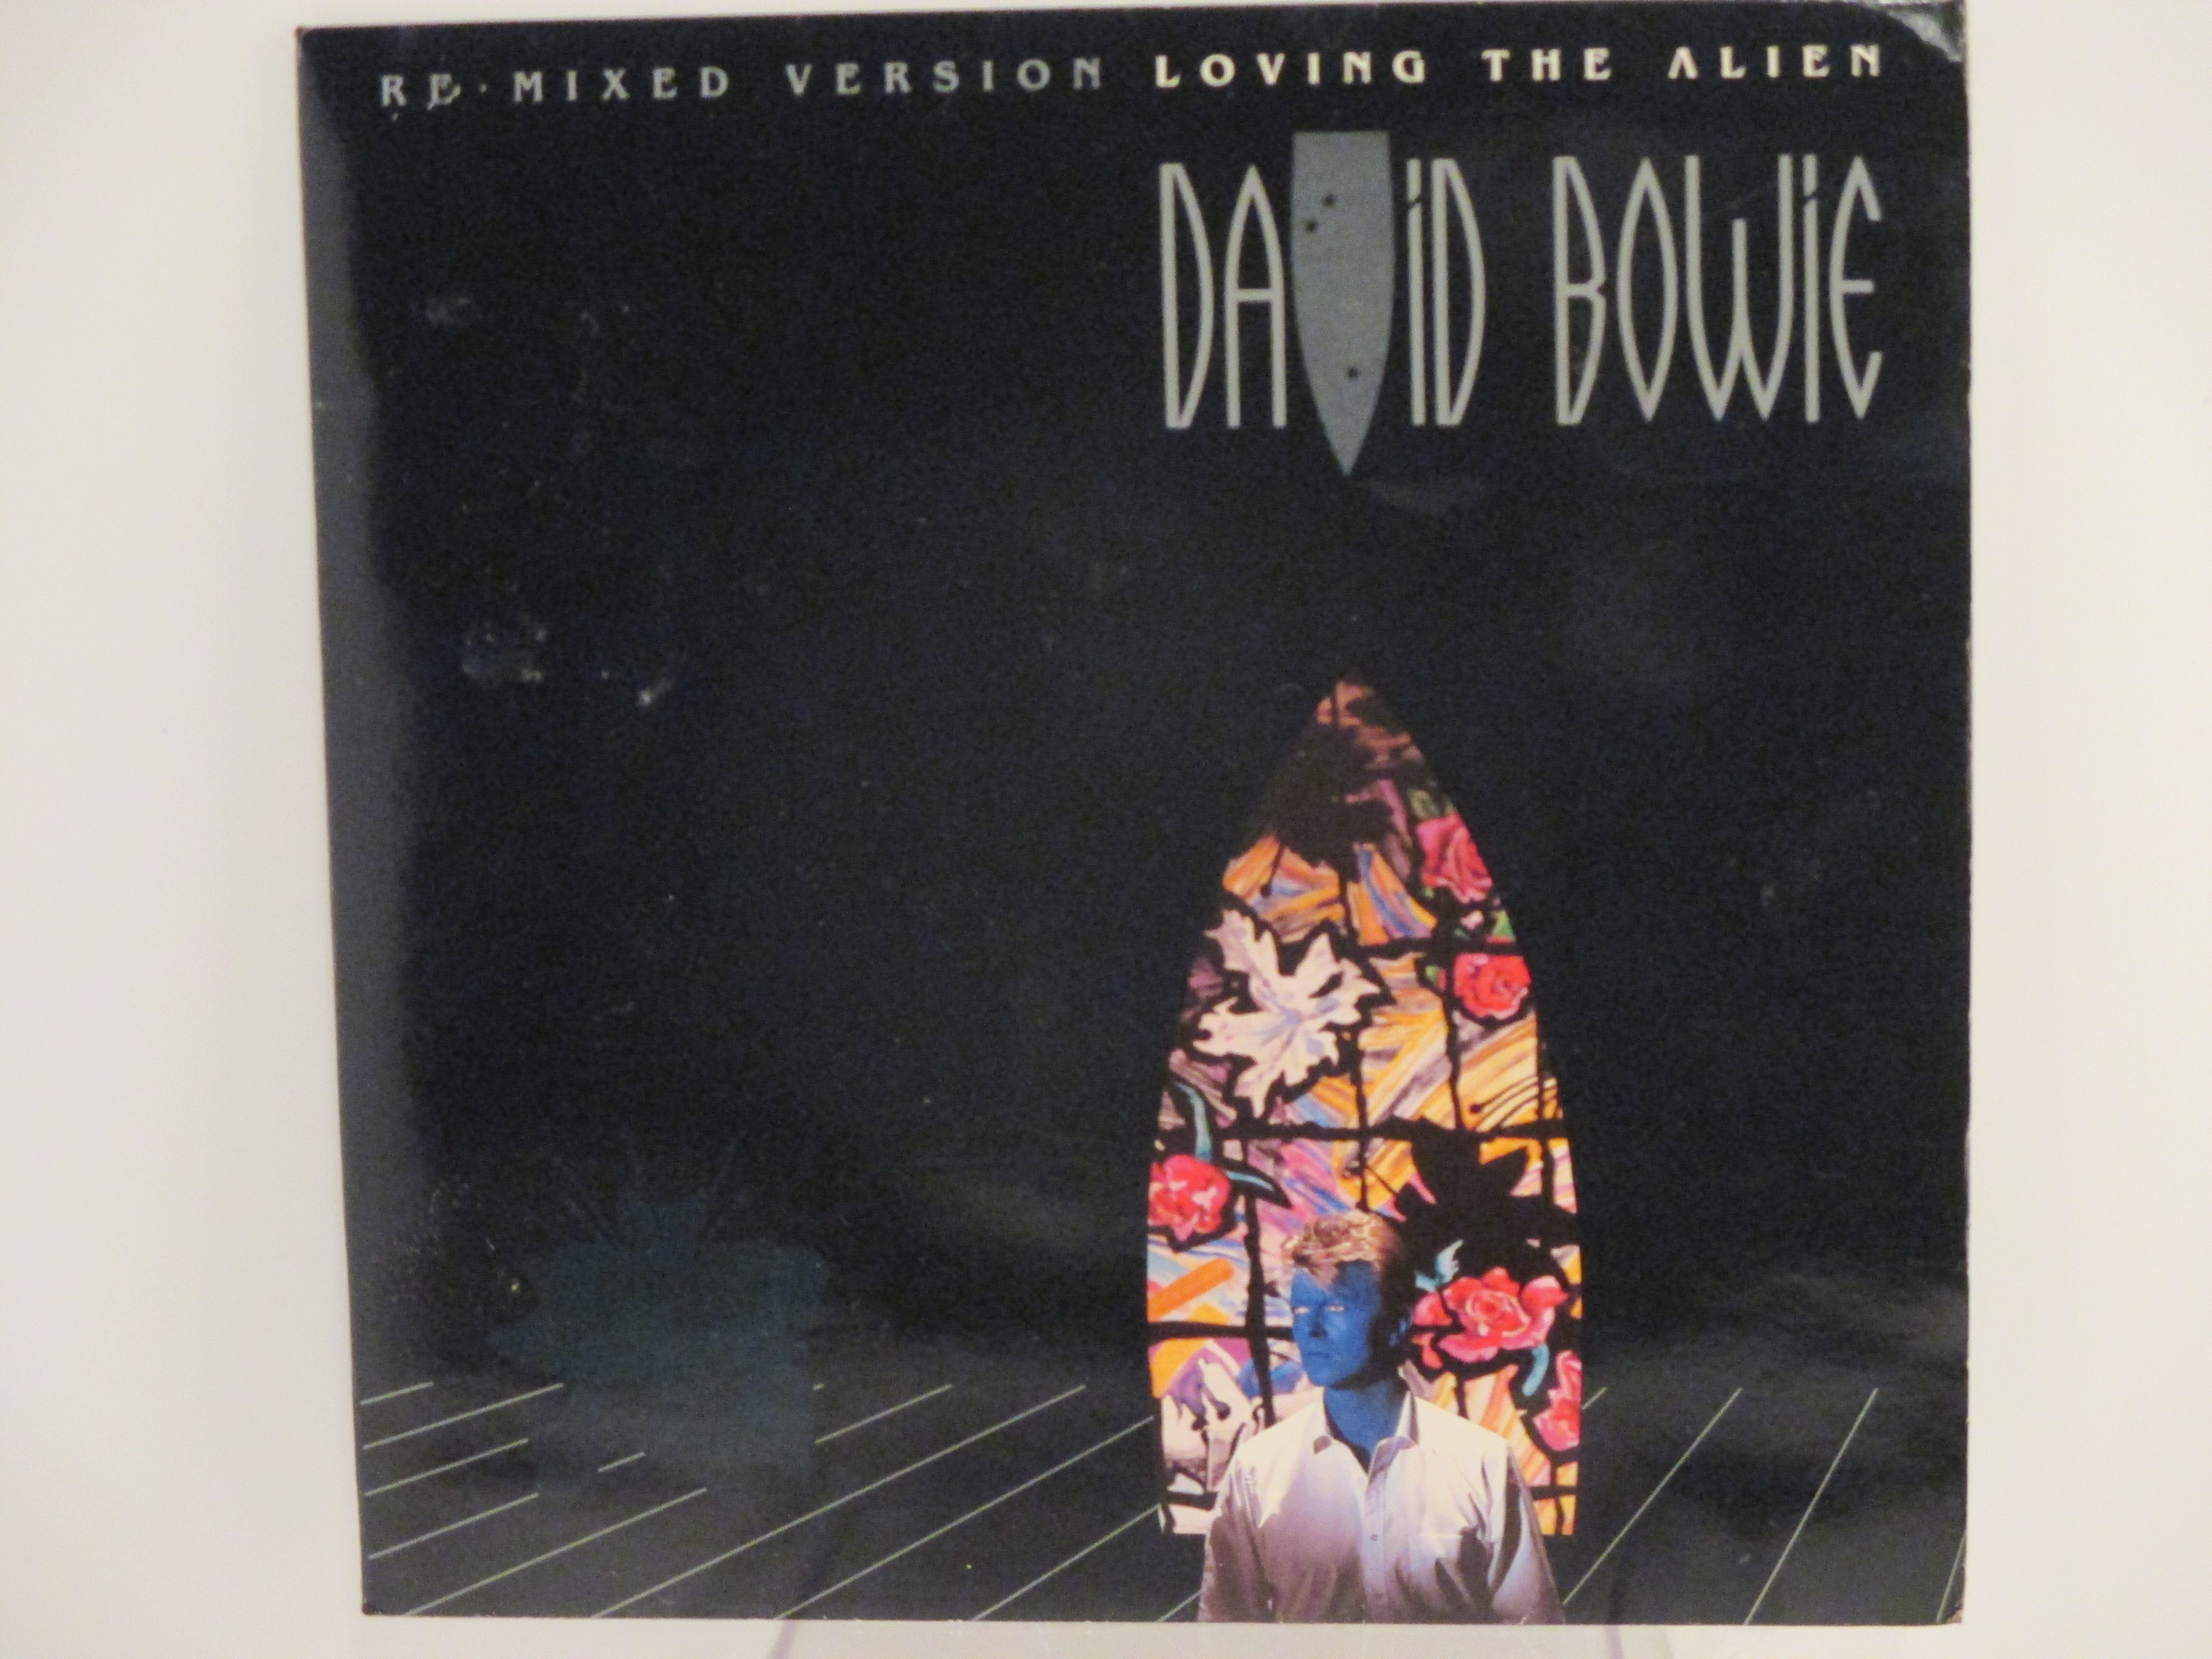 DAVID BOWIE : Loving the alien / Don't look down